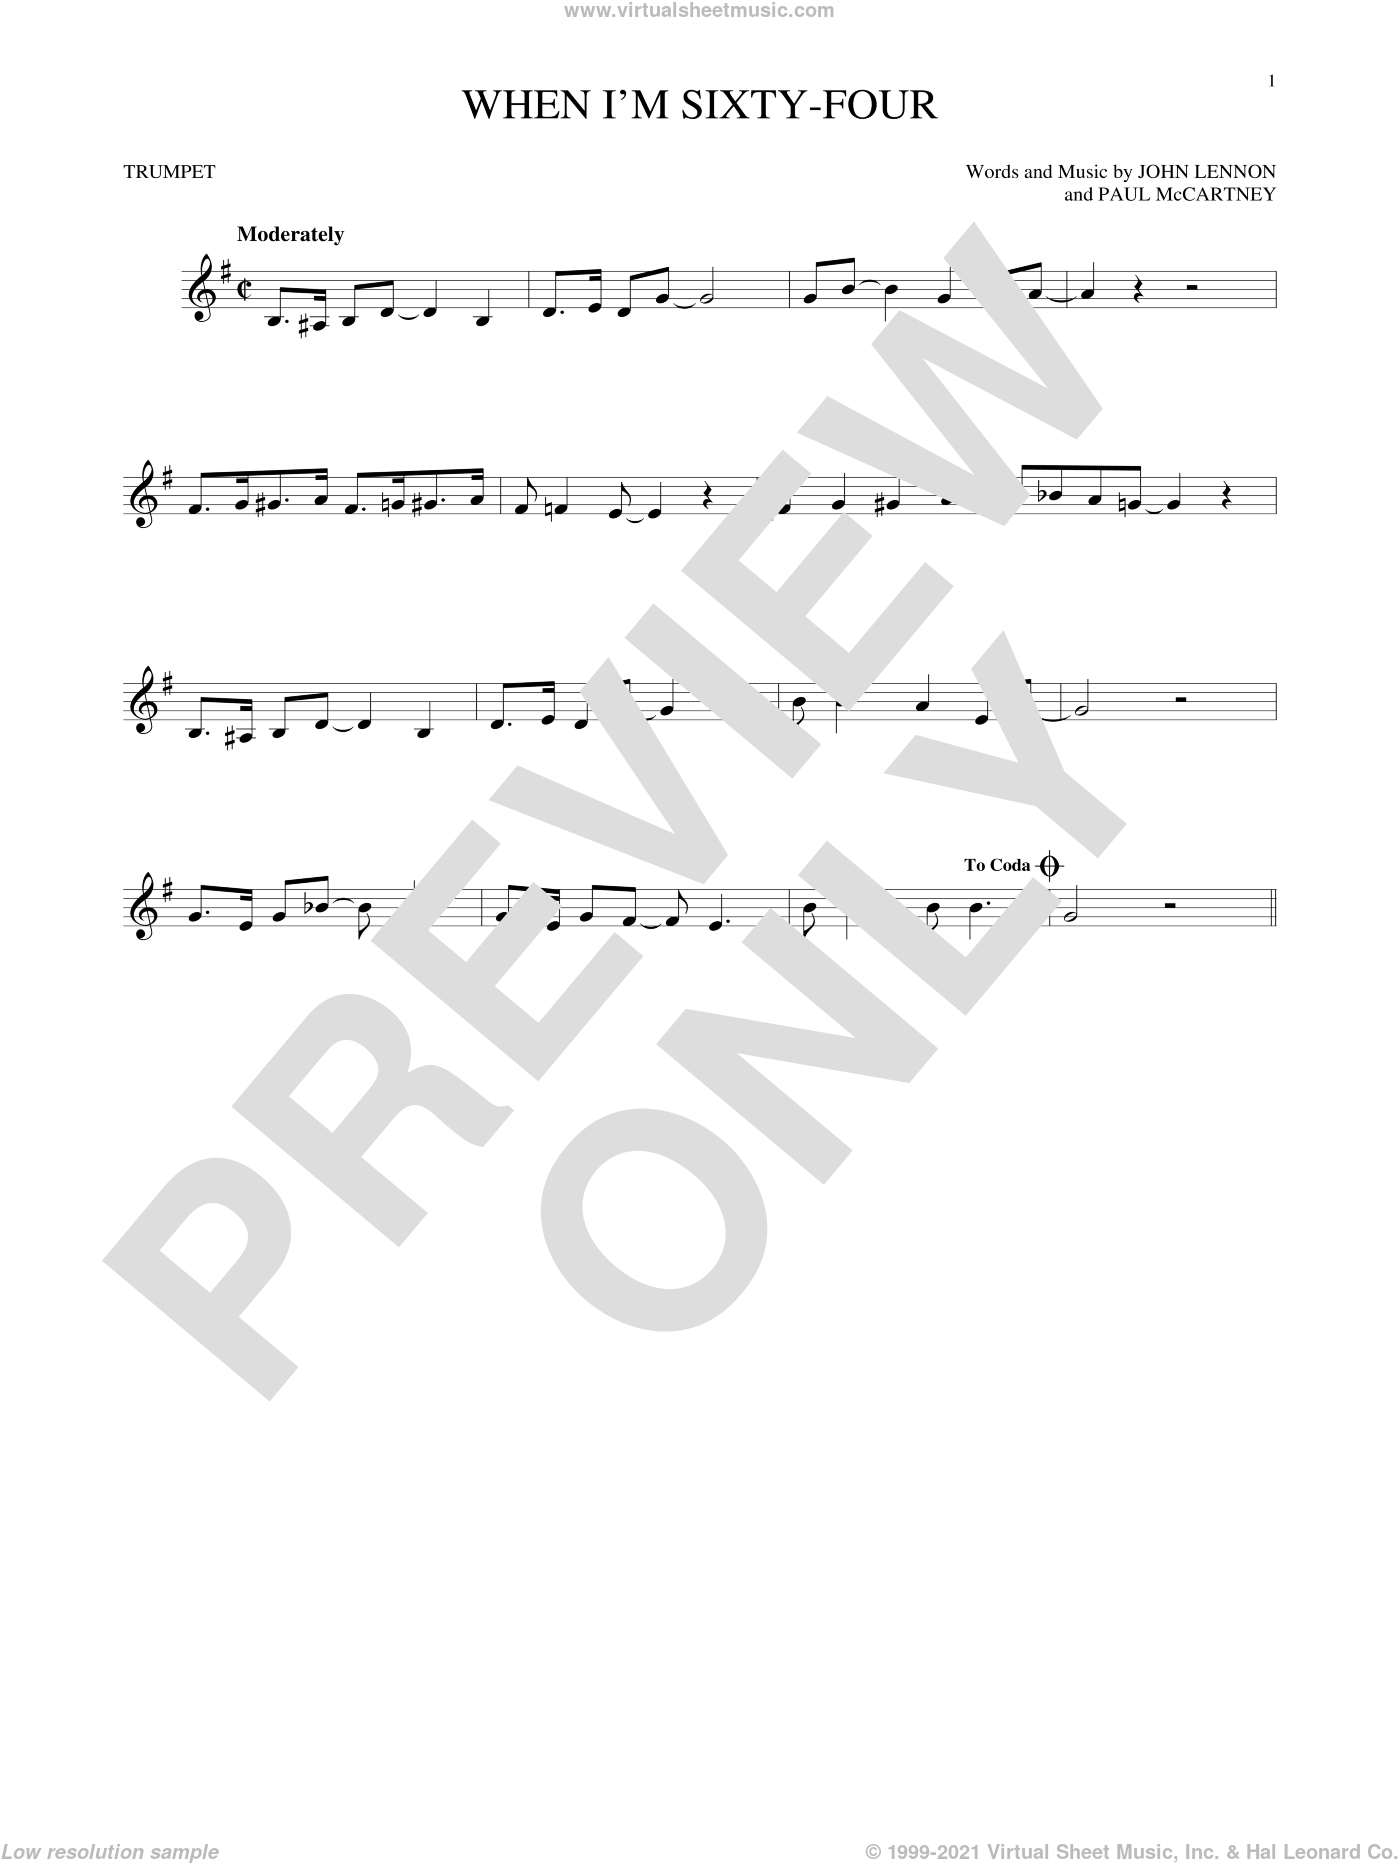 When I'm Sixty-Four sheet music for trumpet solo by Paul McCartney